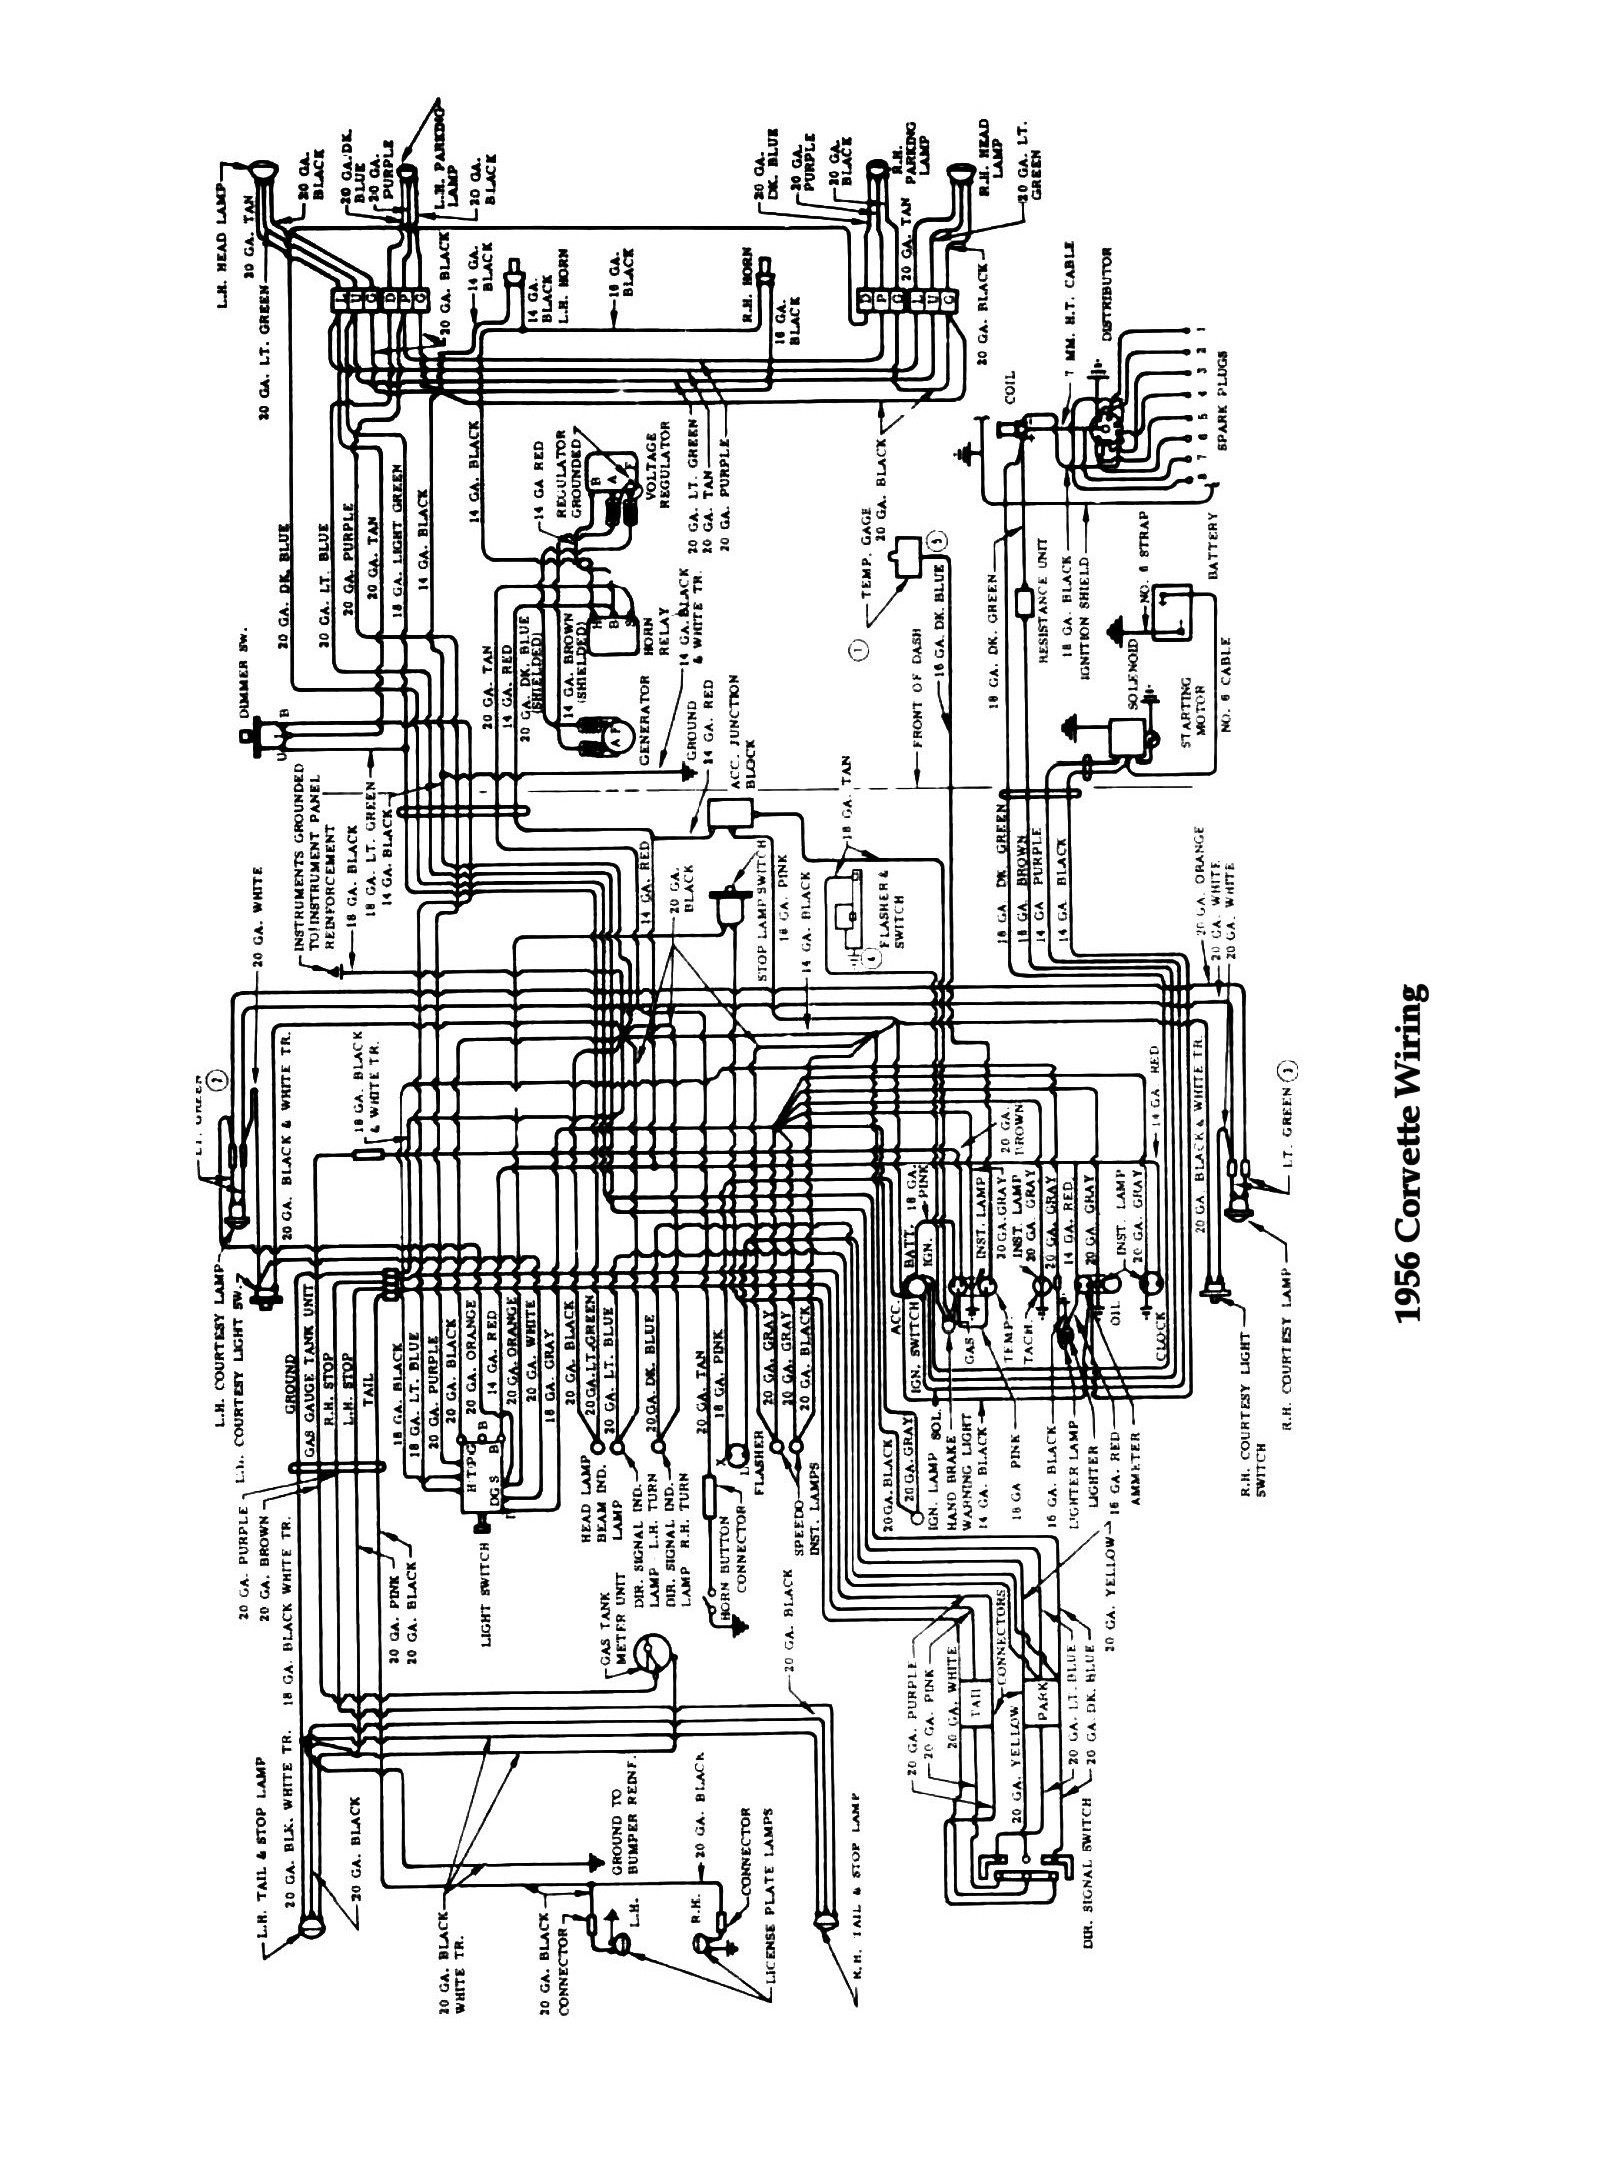 56corvette chevy wiring diagrams 1984 corvette wiring diagram schematic at crackthecode.co